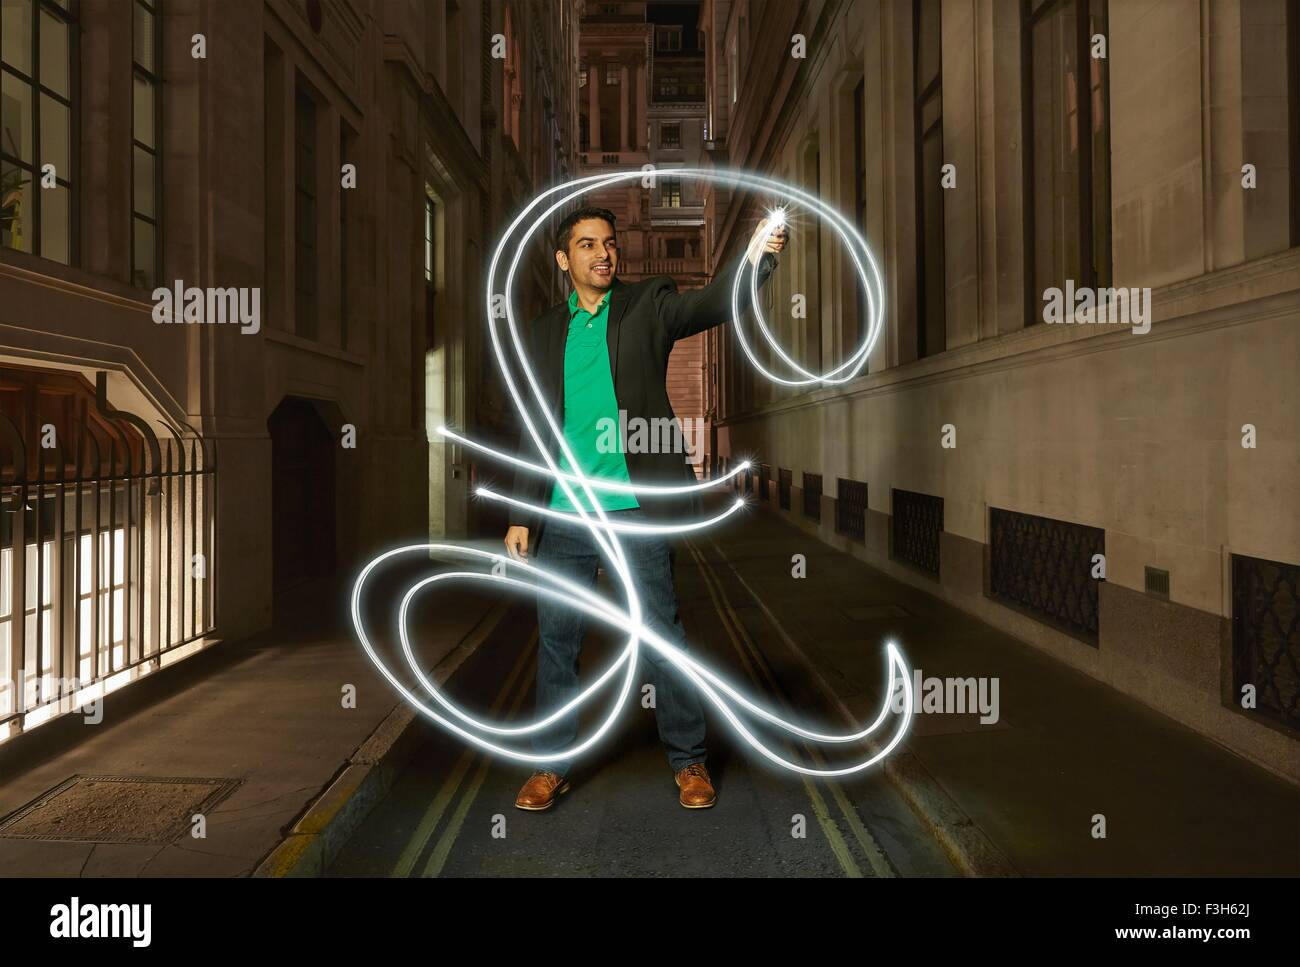 Businessman light painting glowing pound sign on city street at night Photo Stock